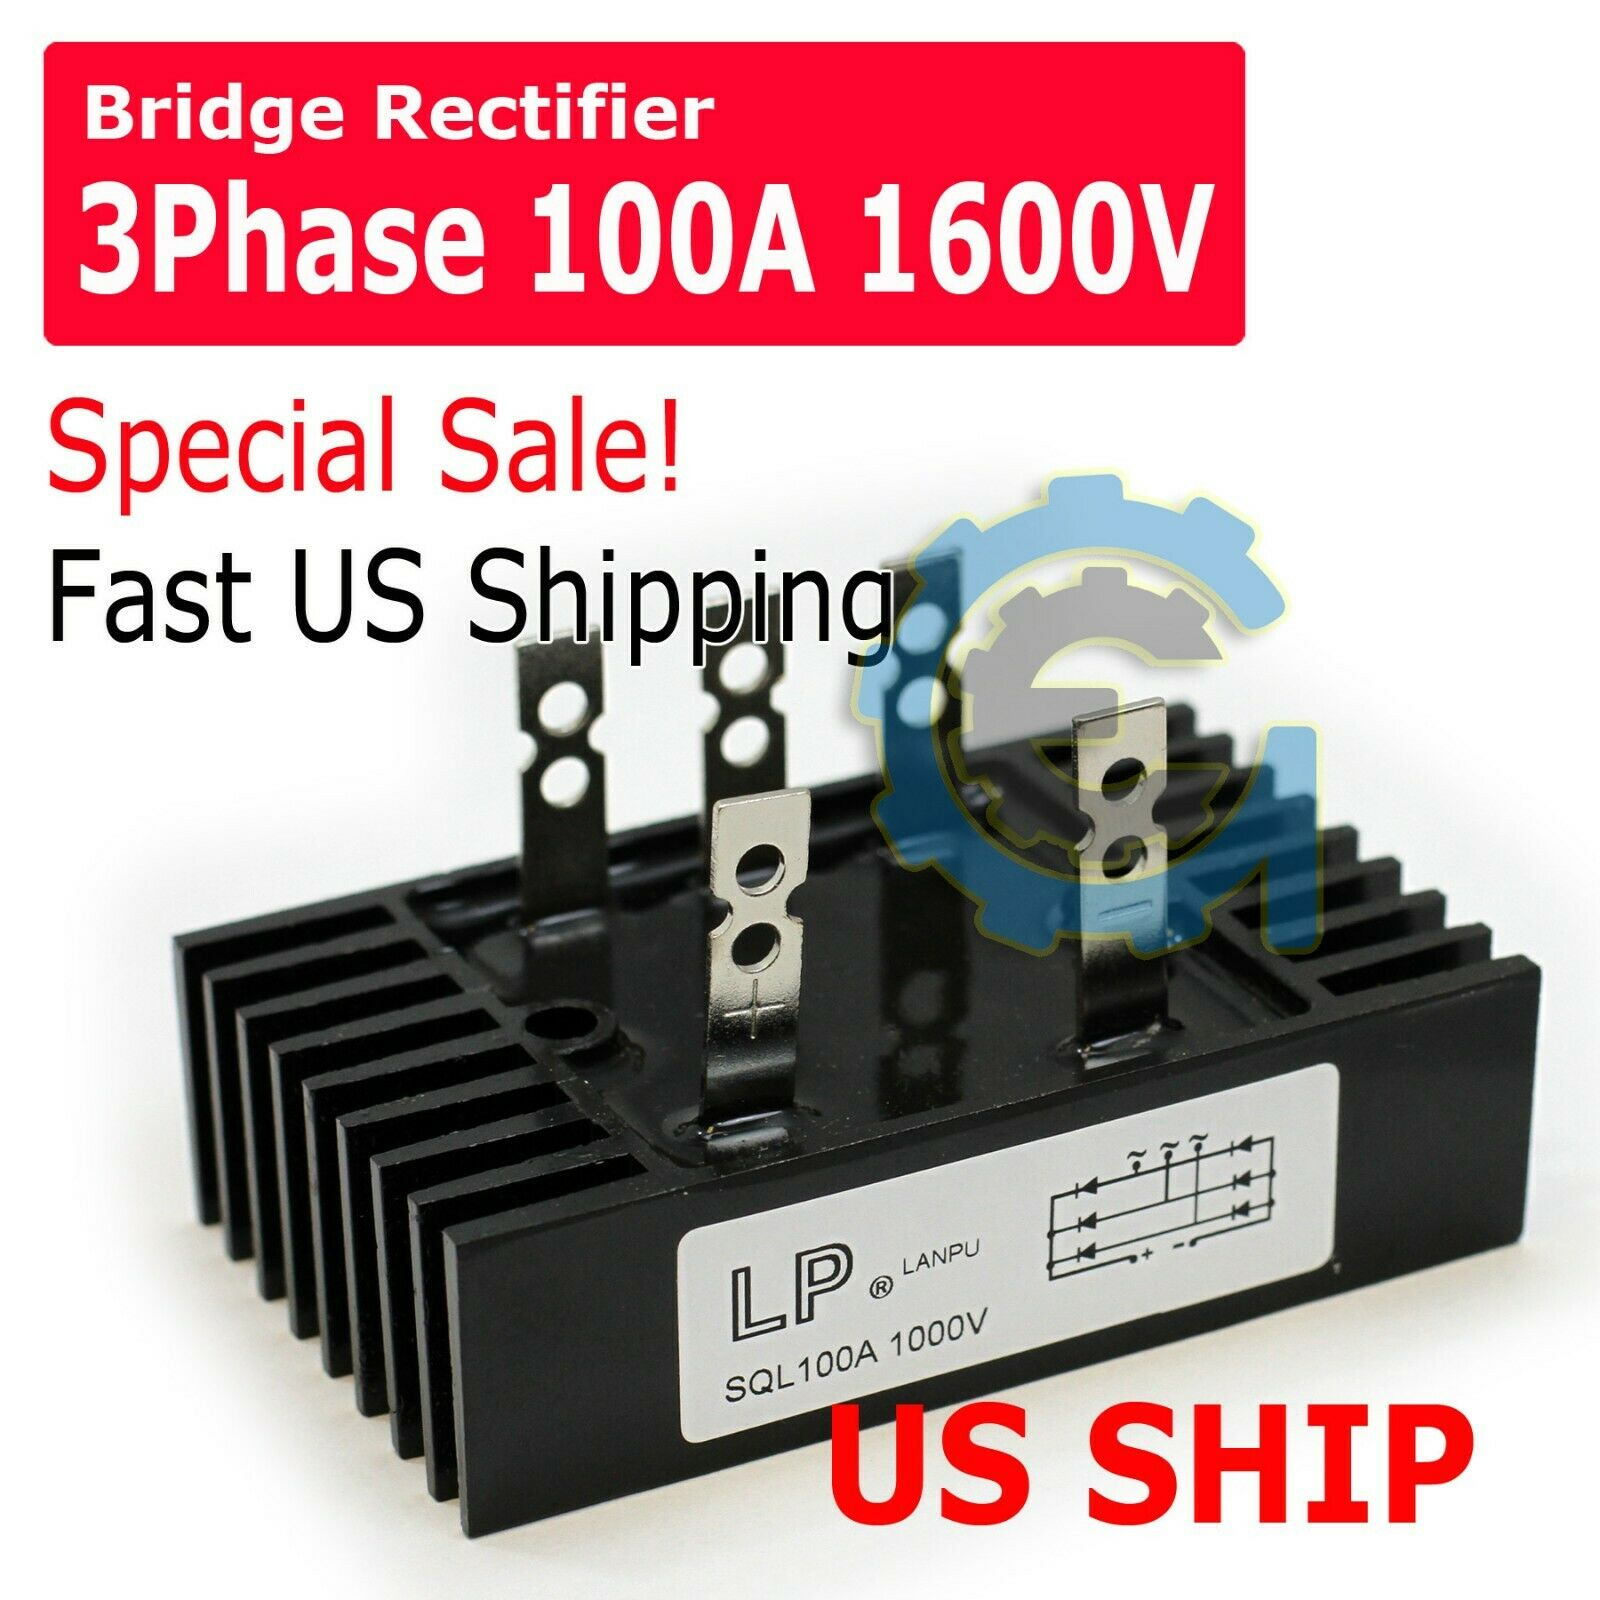 SQL 100a Amp 1000v 3 Phase Diode Metal Case Bridge Rectifier Gbpc Bridge Rectifier Ac To Dc Wiring Diagram on